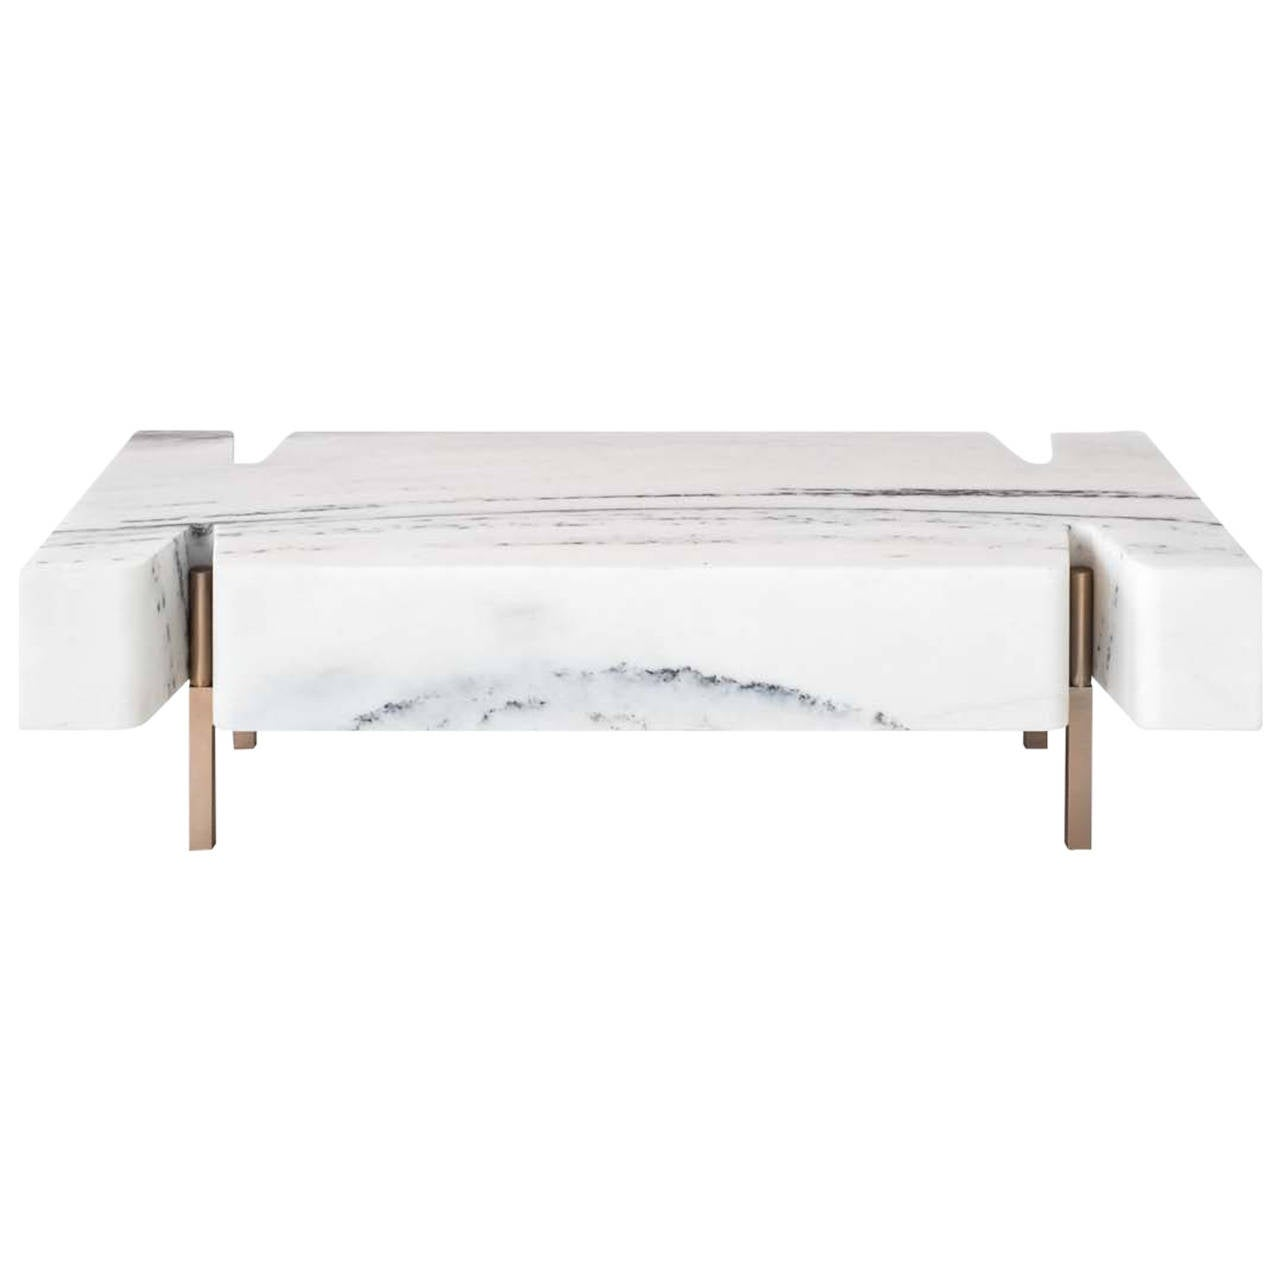 Terranova coffee table or cocktail table with hewn marble top and bronze base for sale at 1stdibs Coffee tables with marble tops